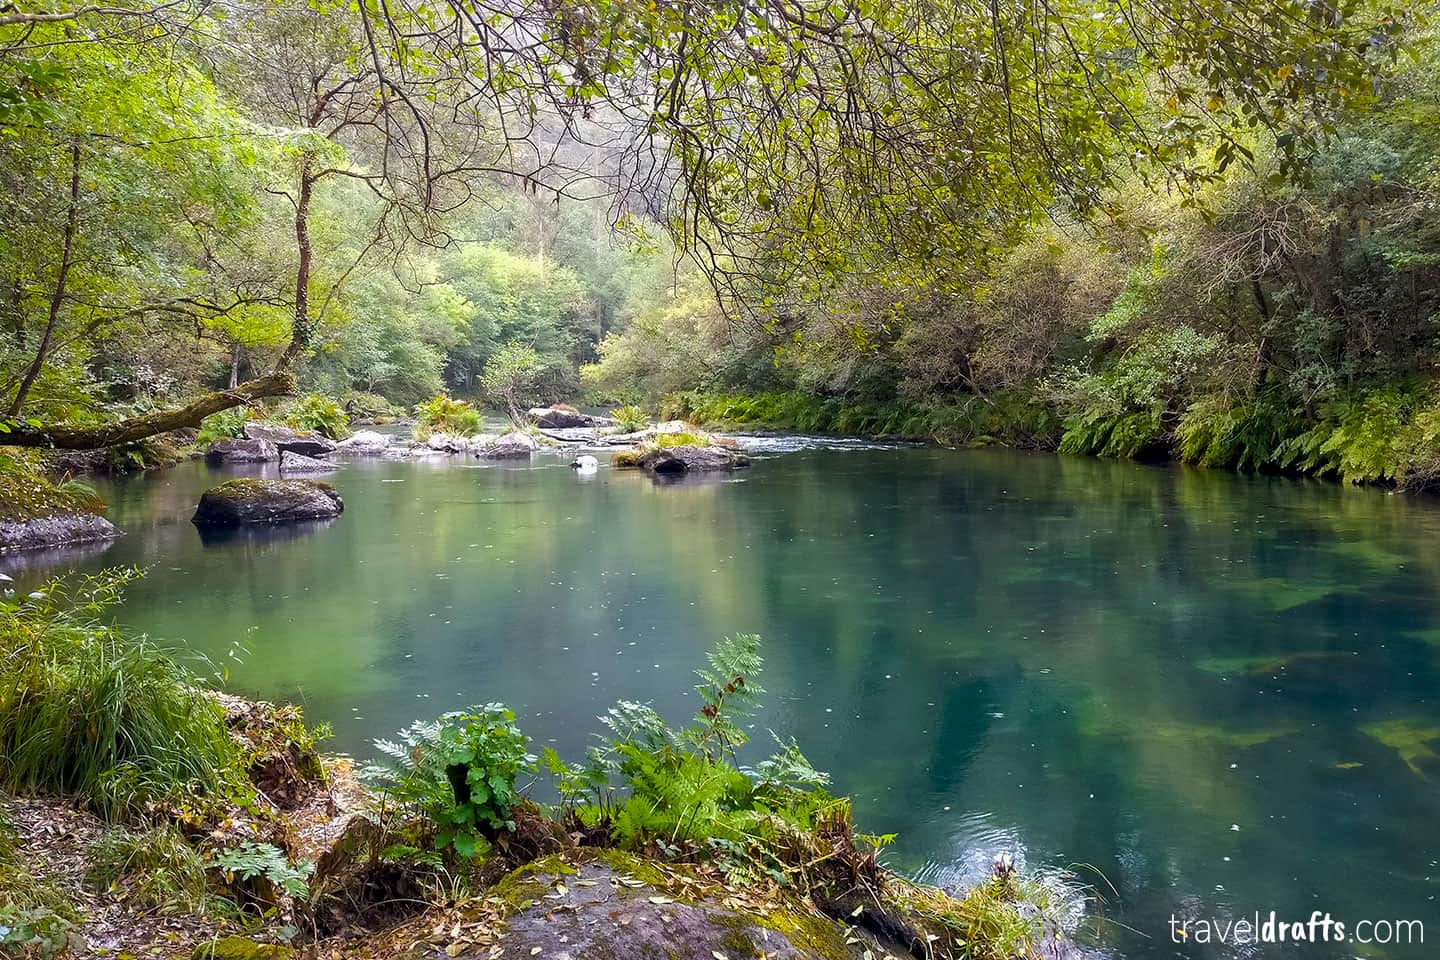 fragas do eume, one of the top things to do in galicia